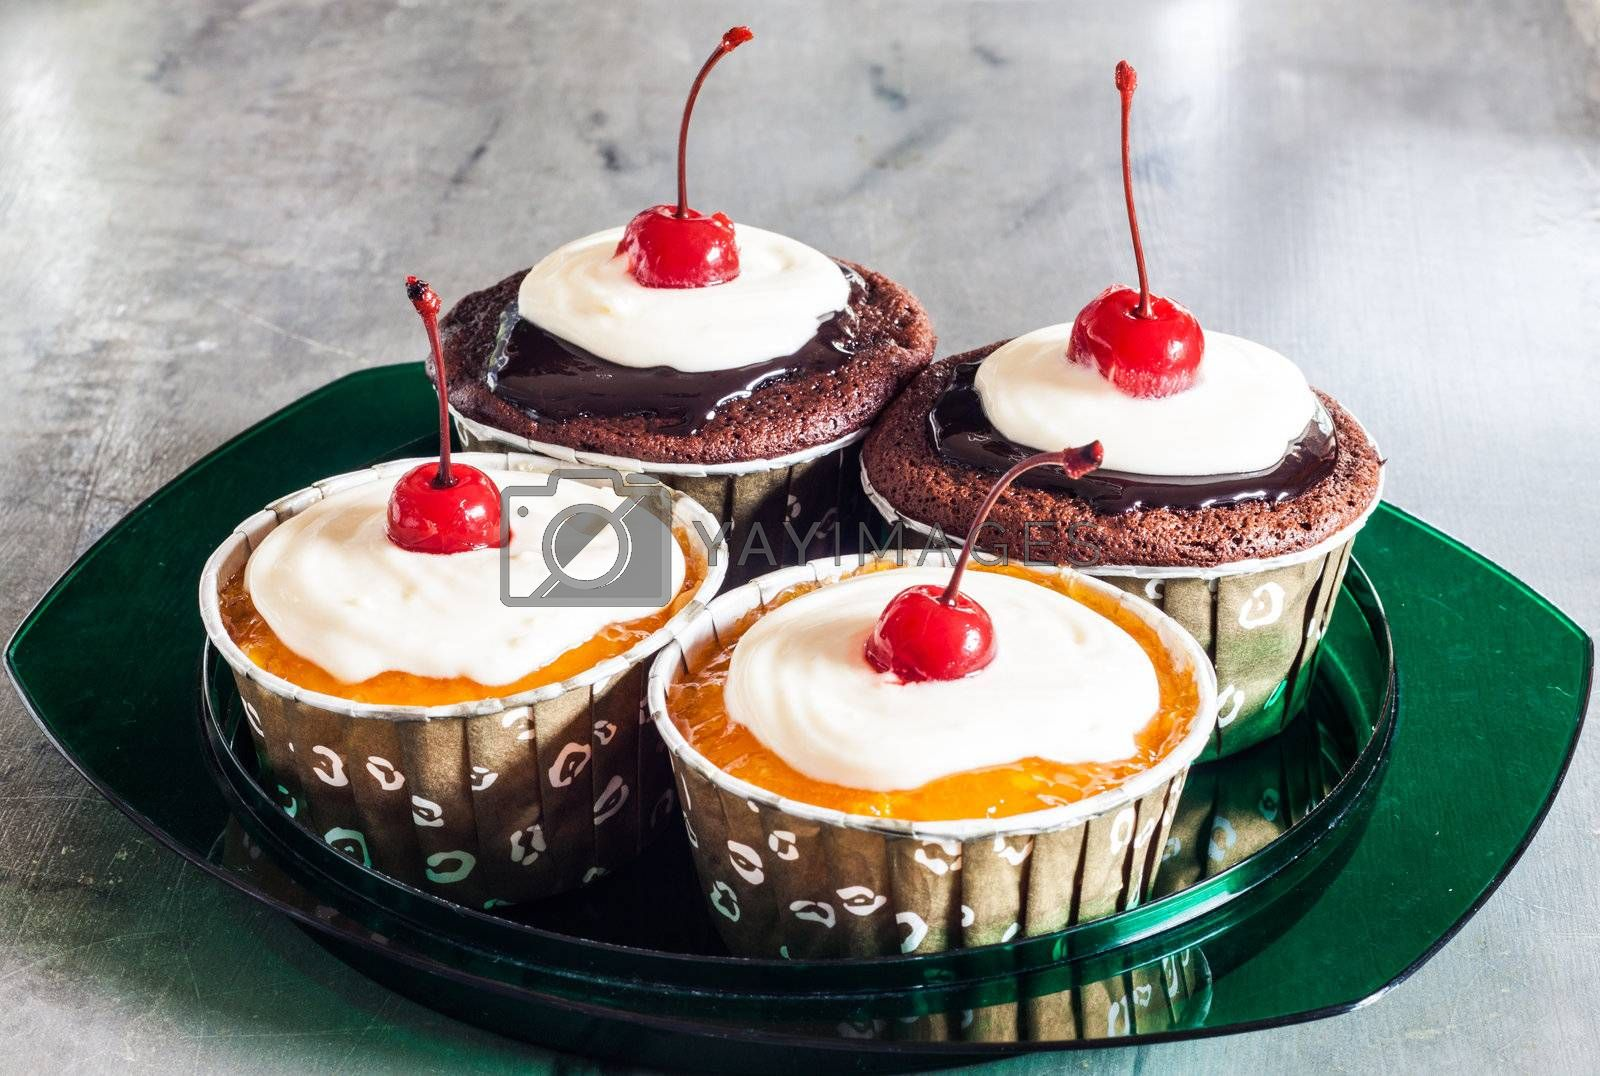 Two Chocolate and Two Butter Marmalade Cupcakes